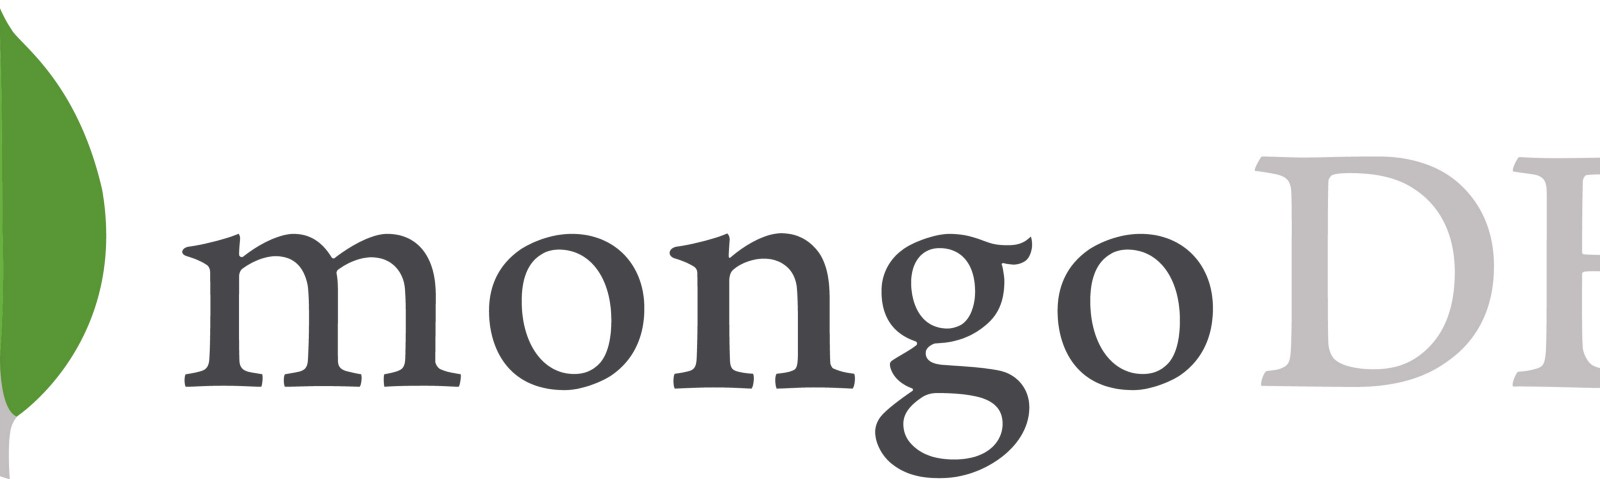 How to get started with MongoDB in 10 minutes